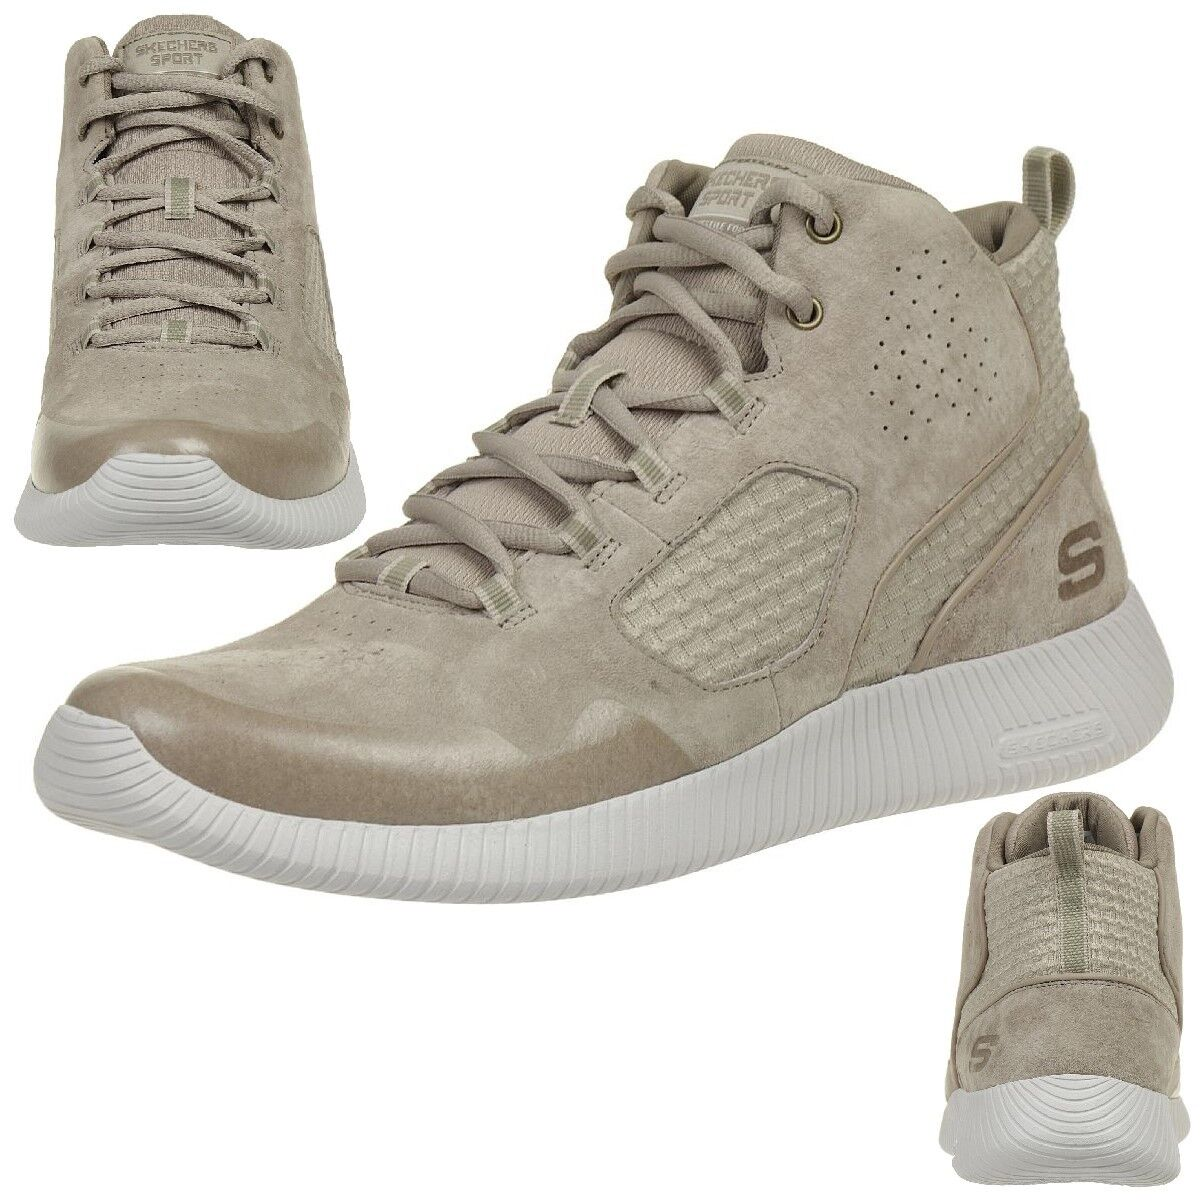 Skechers Depth Charge Drango Men's Sneakers Outdoor shoes Taupe Beige